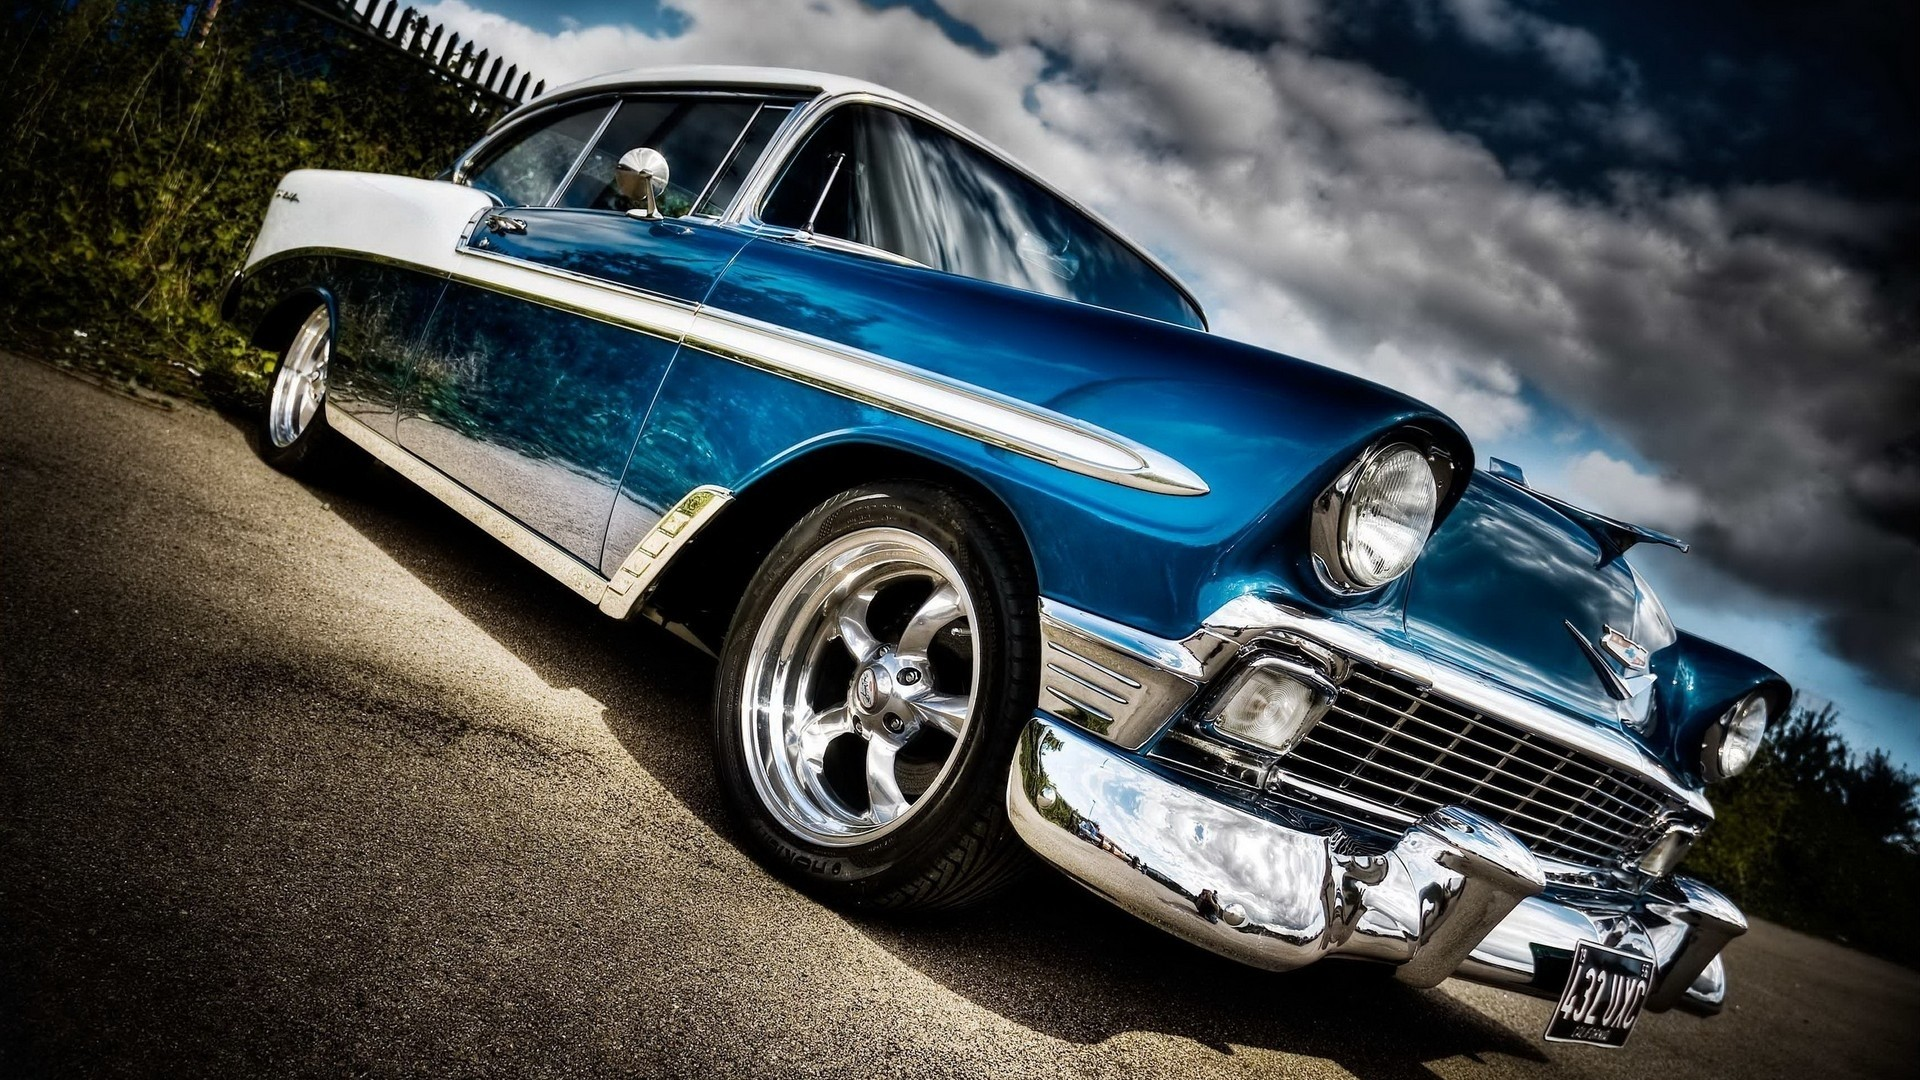 ... Chevy Wallpaper · Cool Chevy Wallpaper